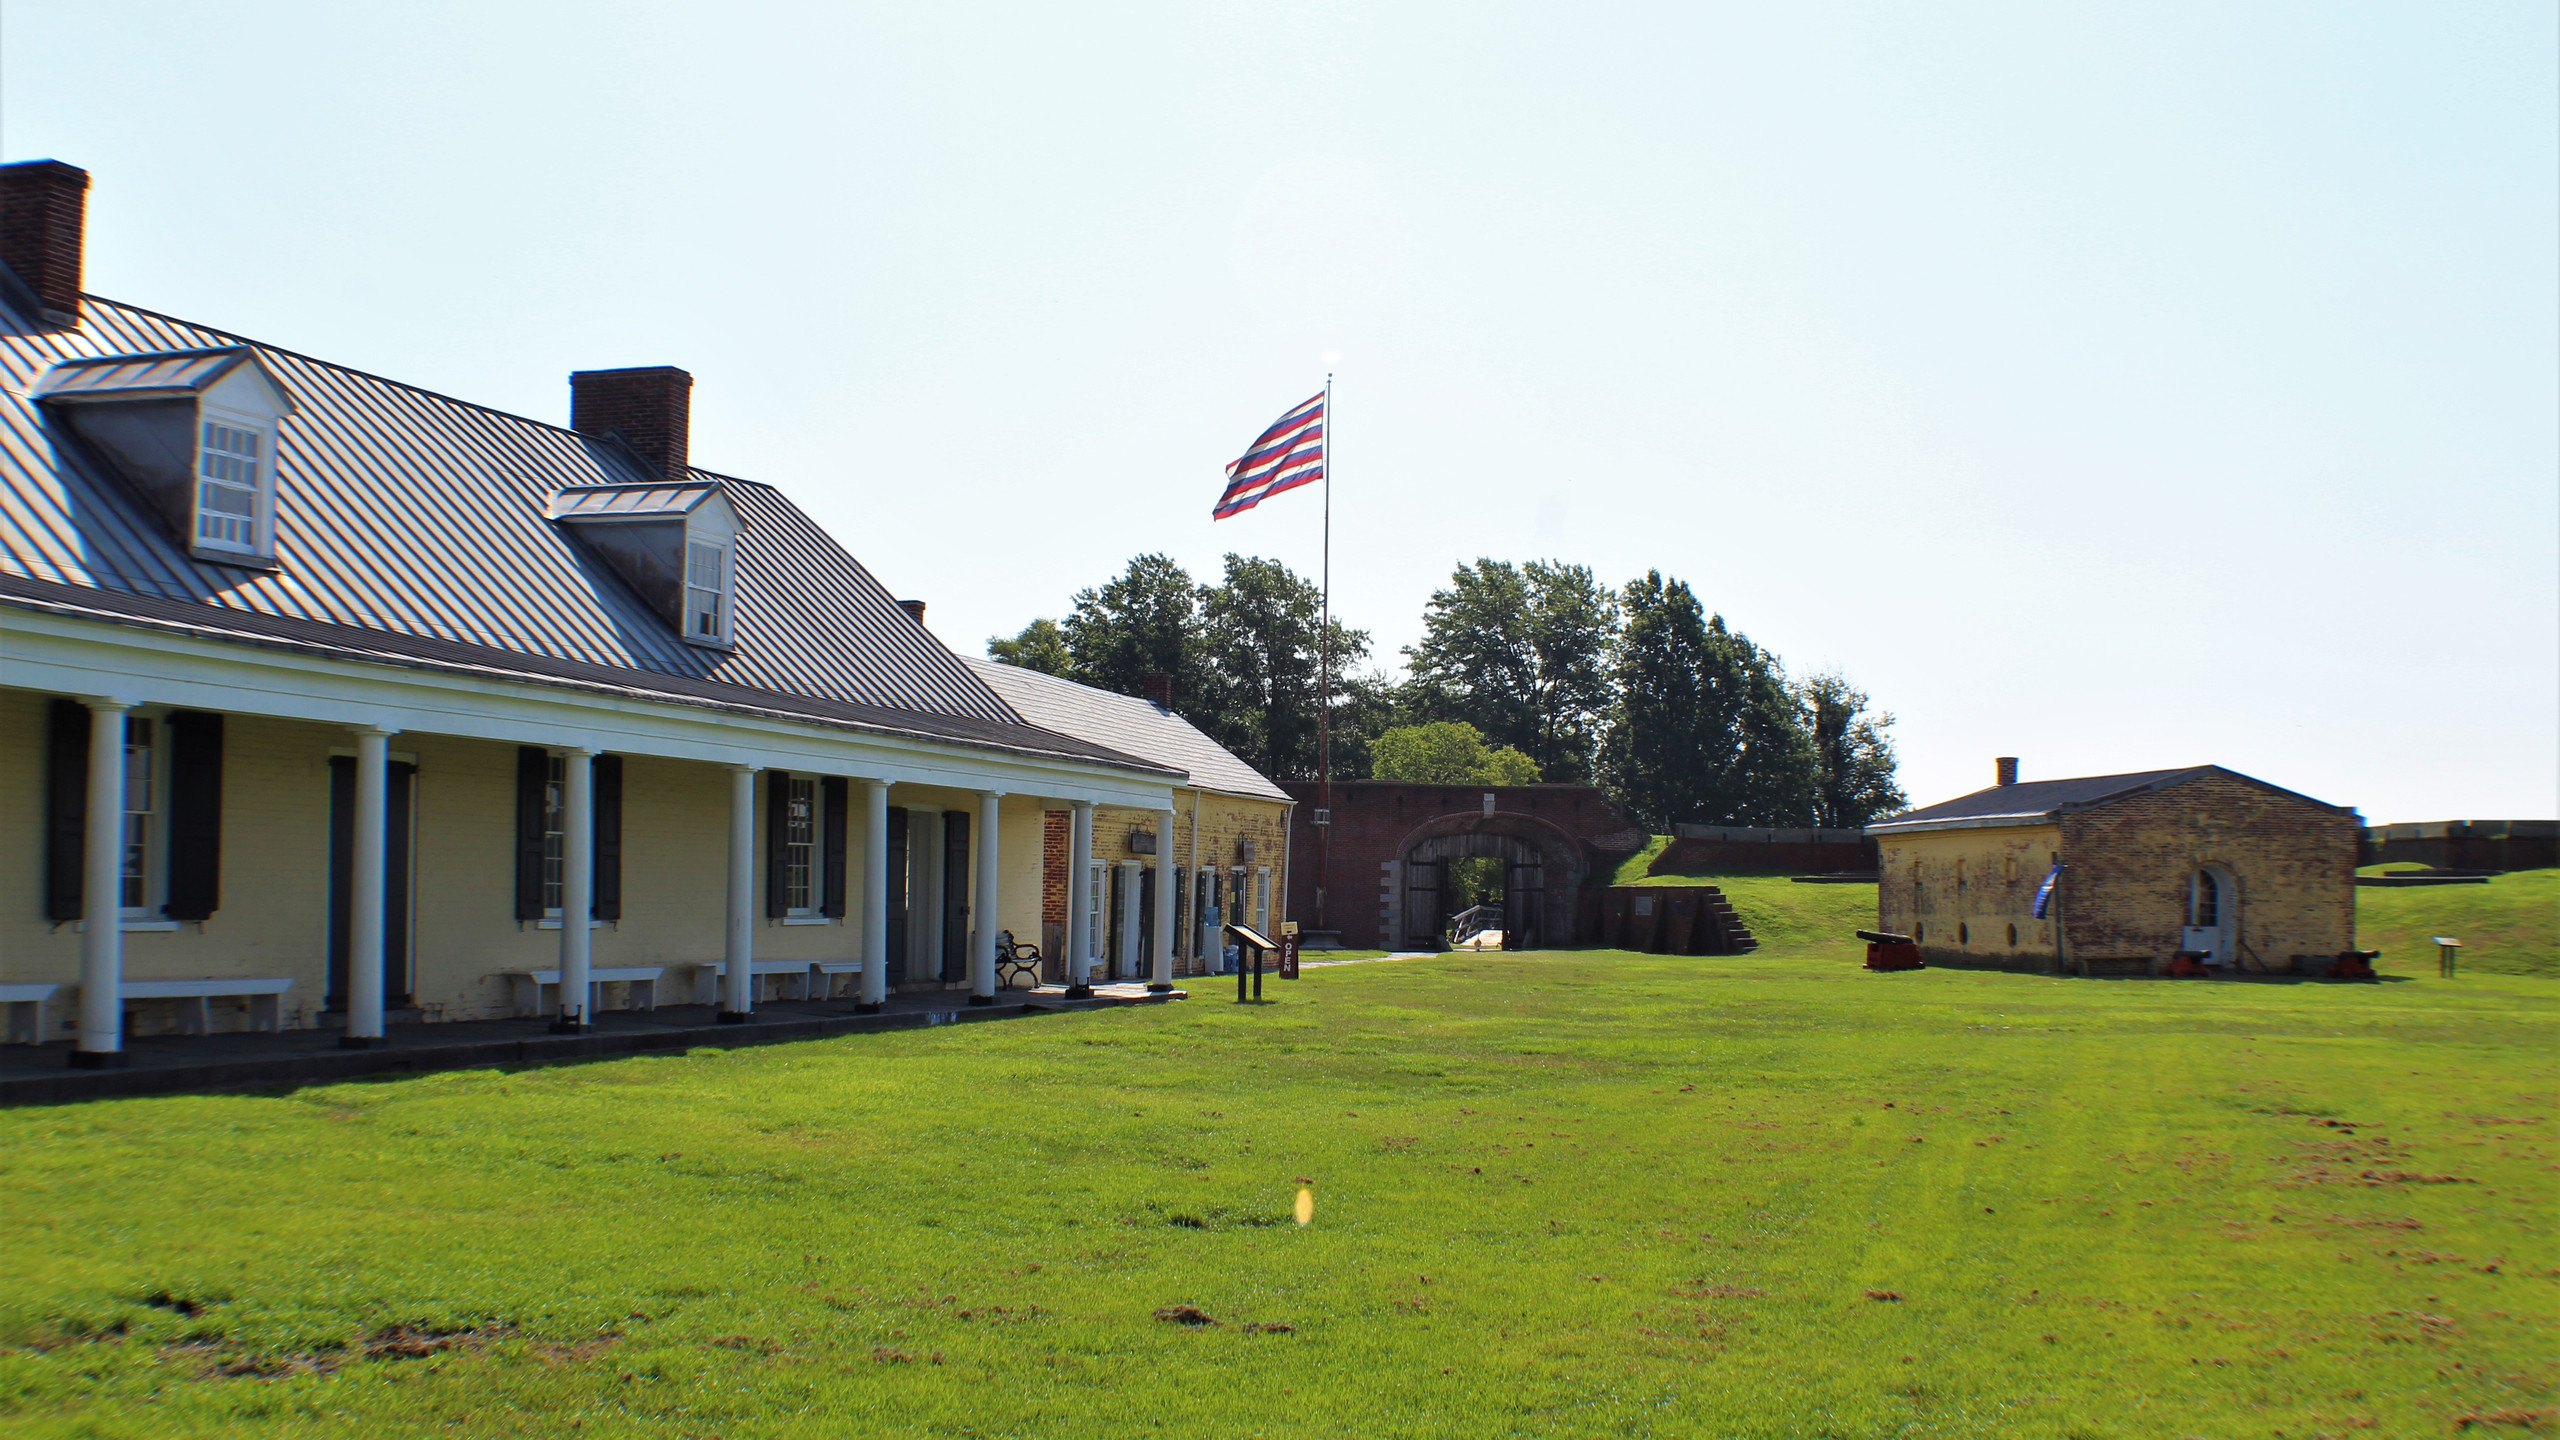 Soldiers' Quarters and Arsenal